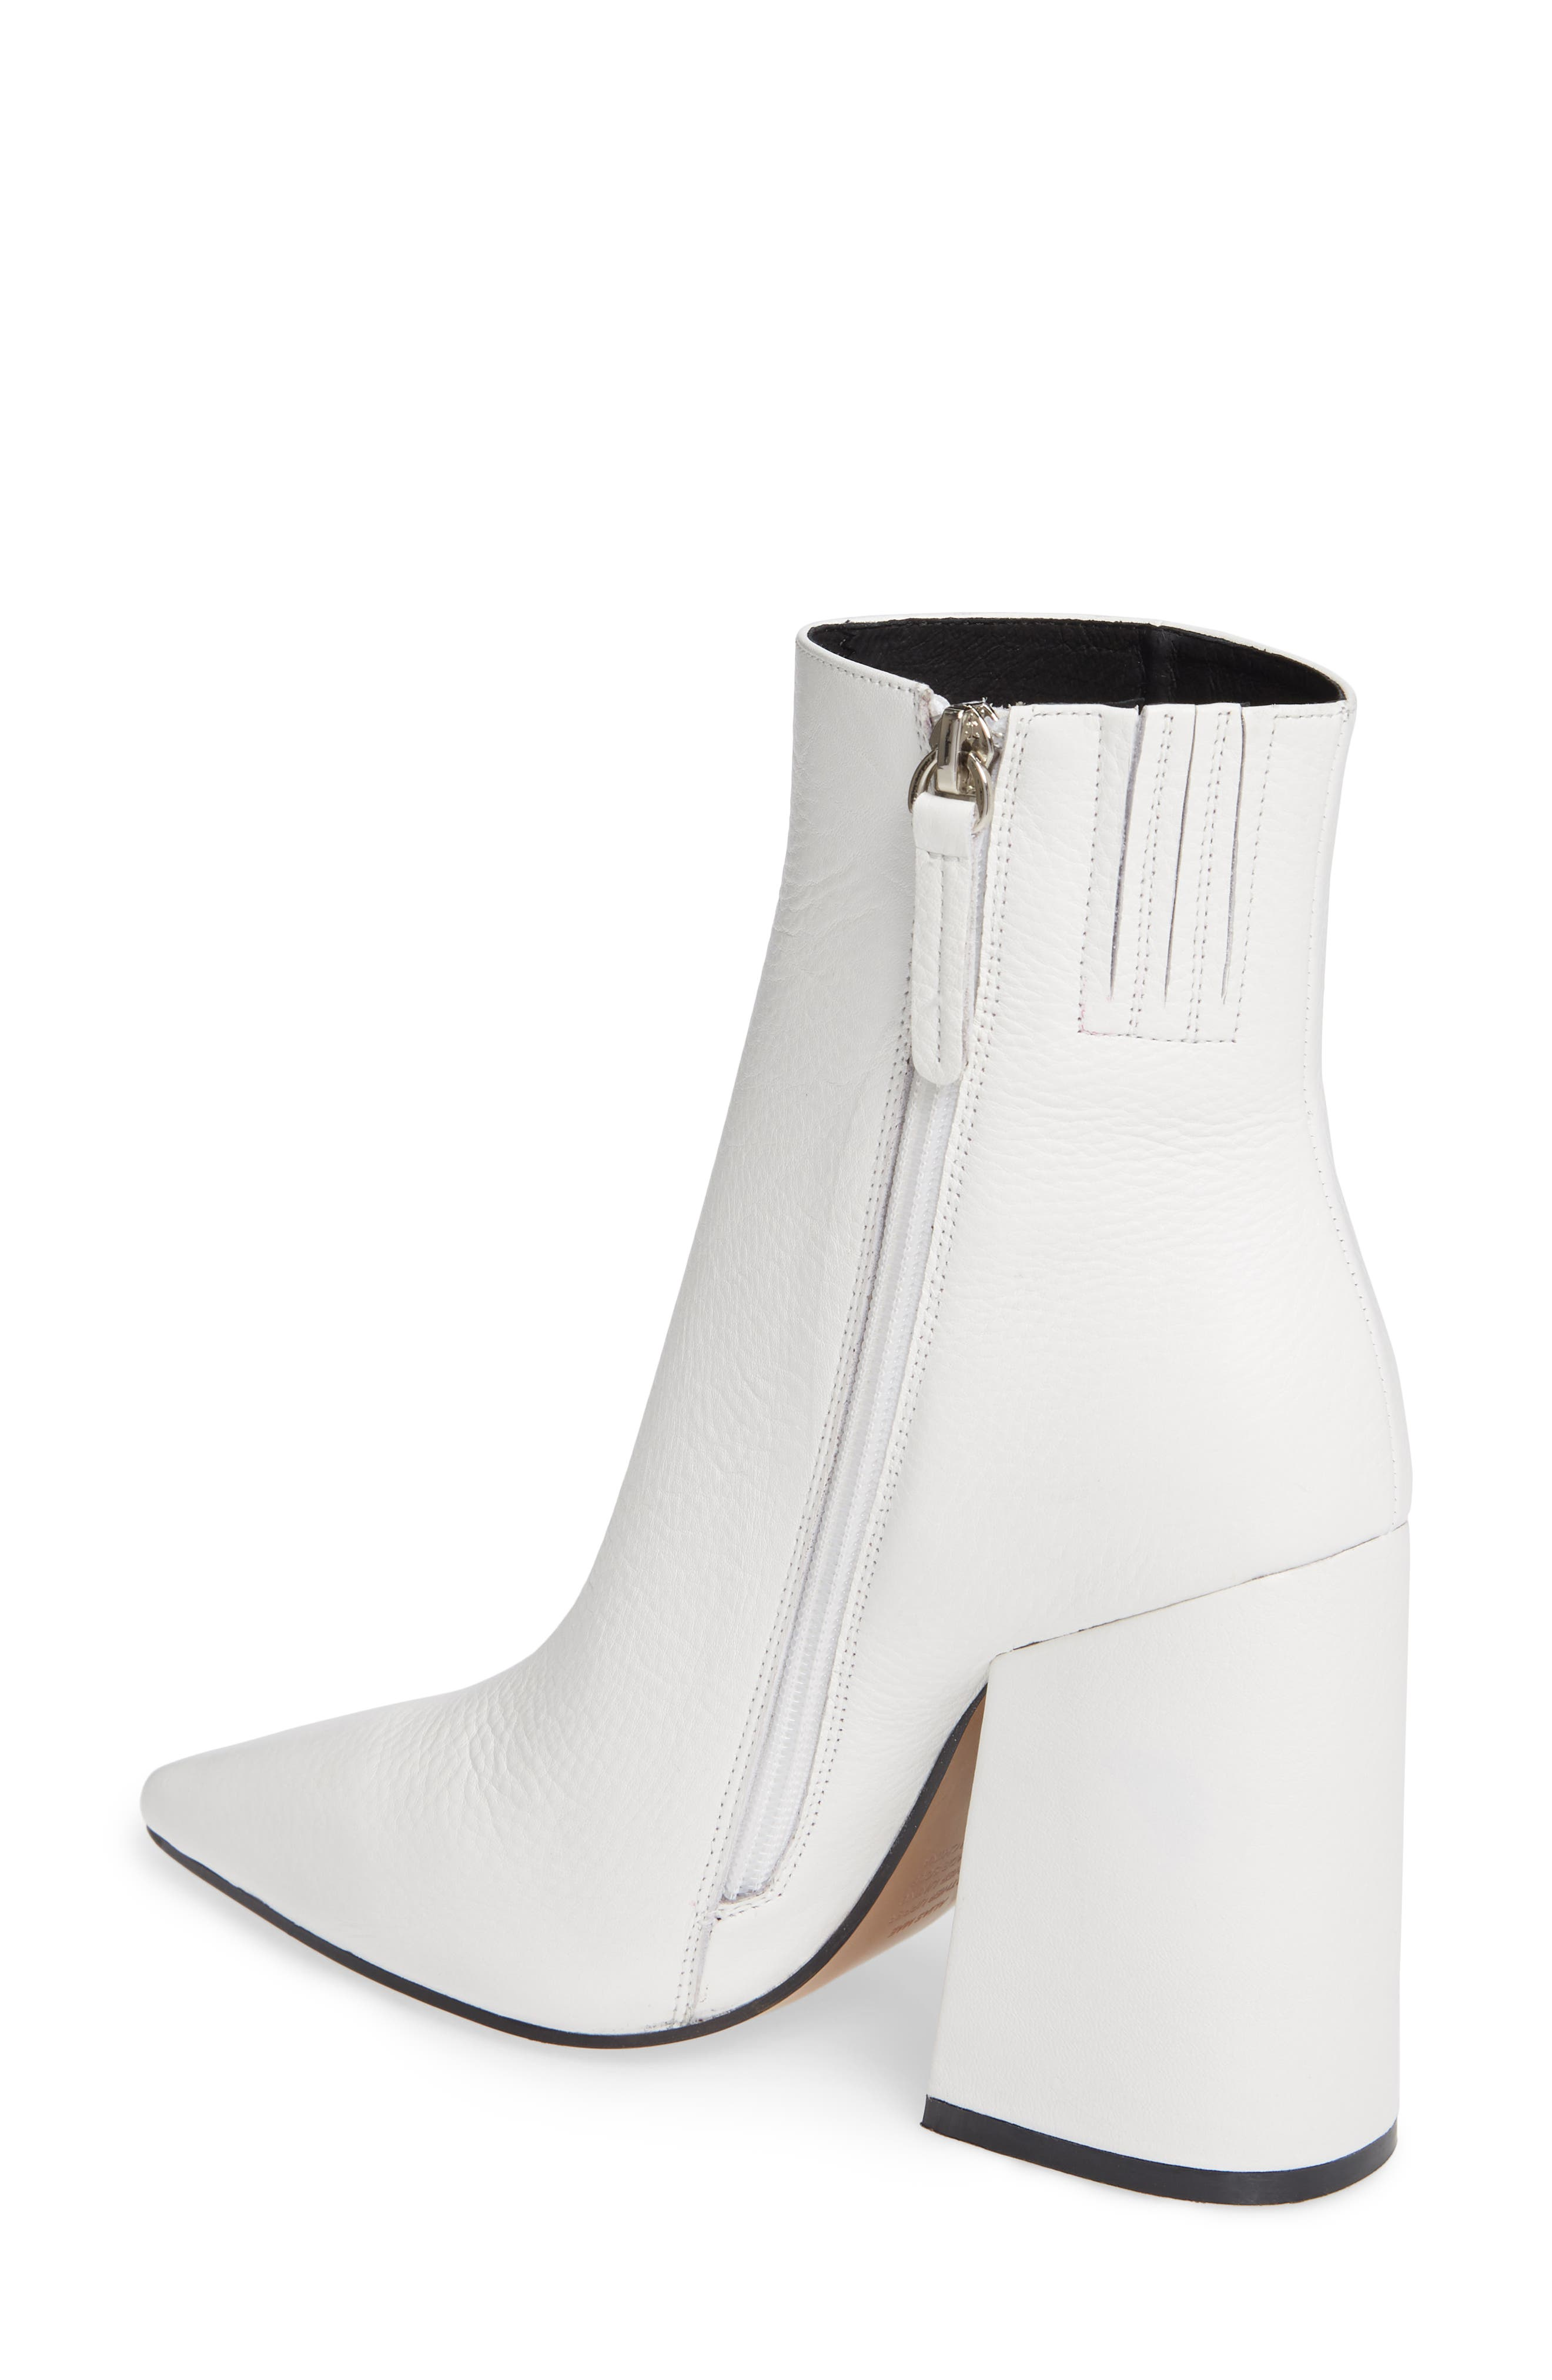 Ahara Bootie,                             Alternate thumbnail 2, color,                             WHITE LEATHER